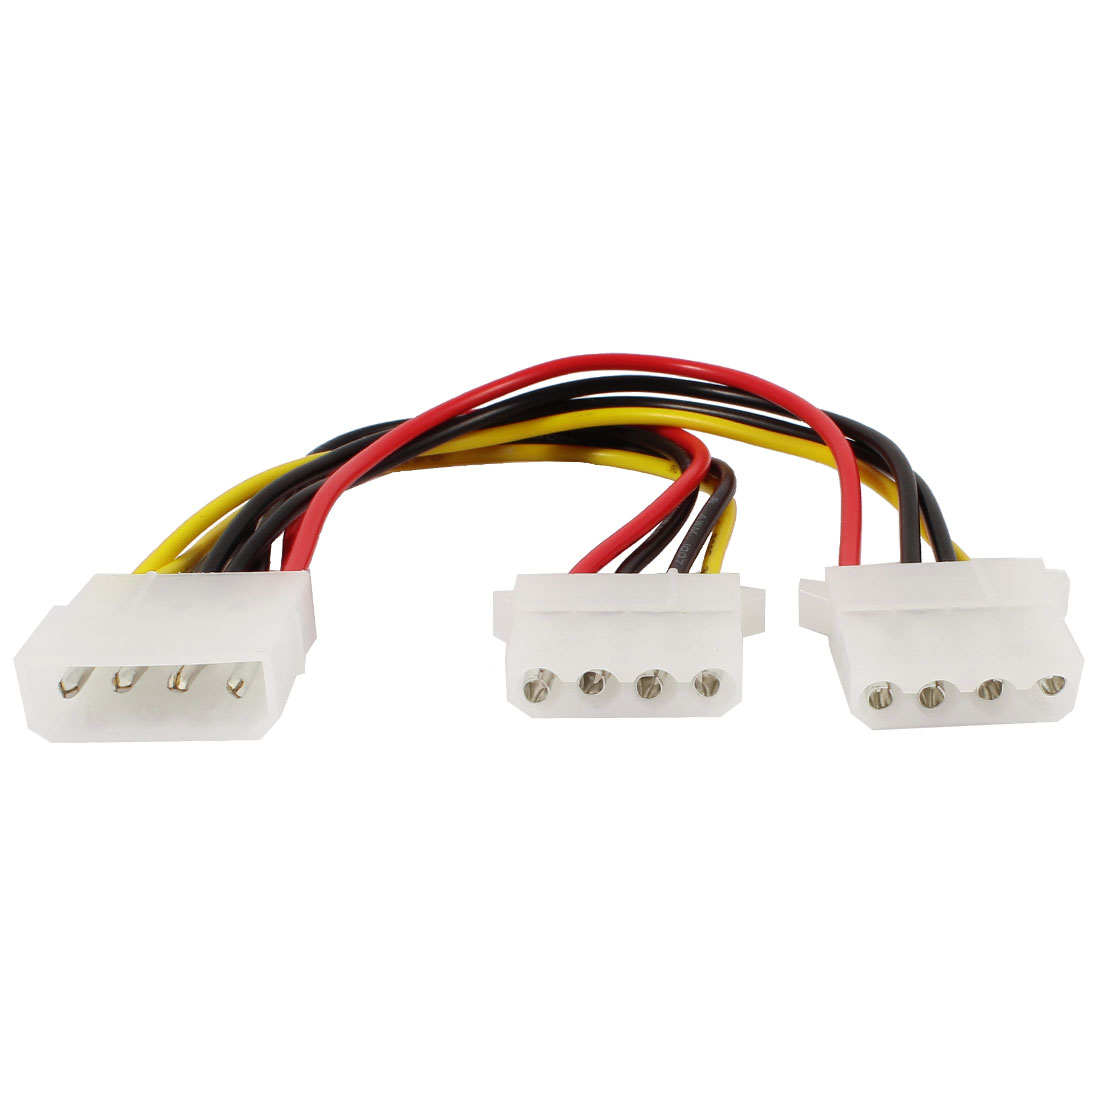 PC Computer IDE 4 Pin Male to Dual Female Converter Power Cable 20cm